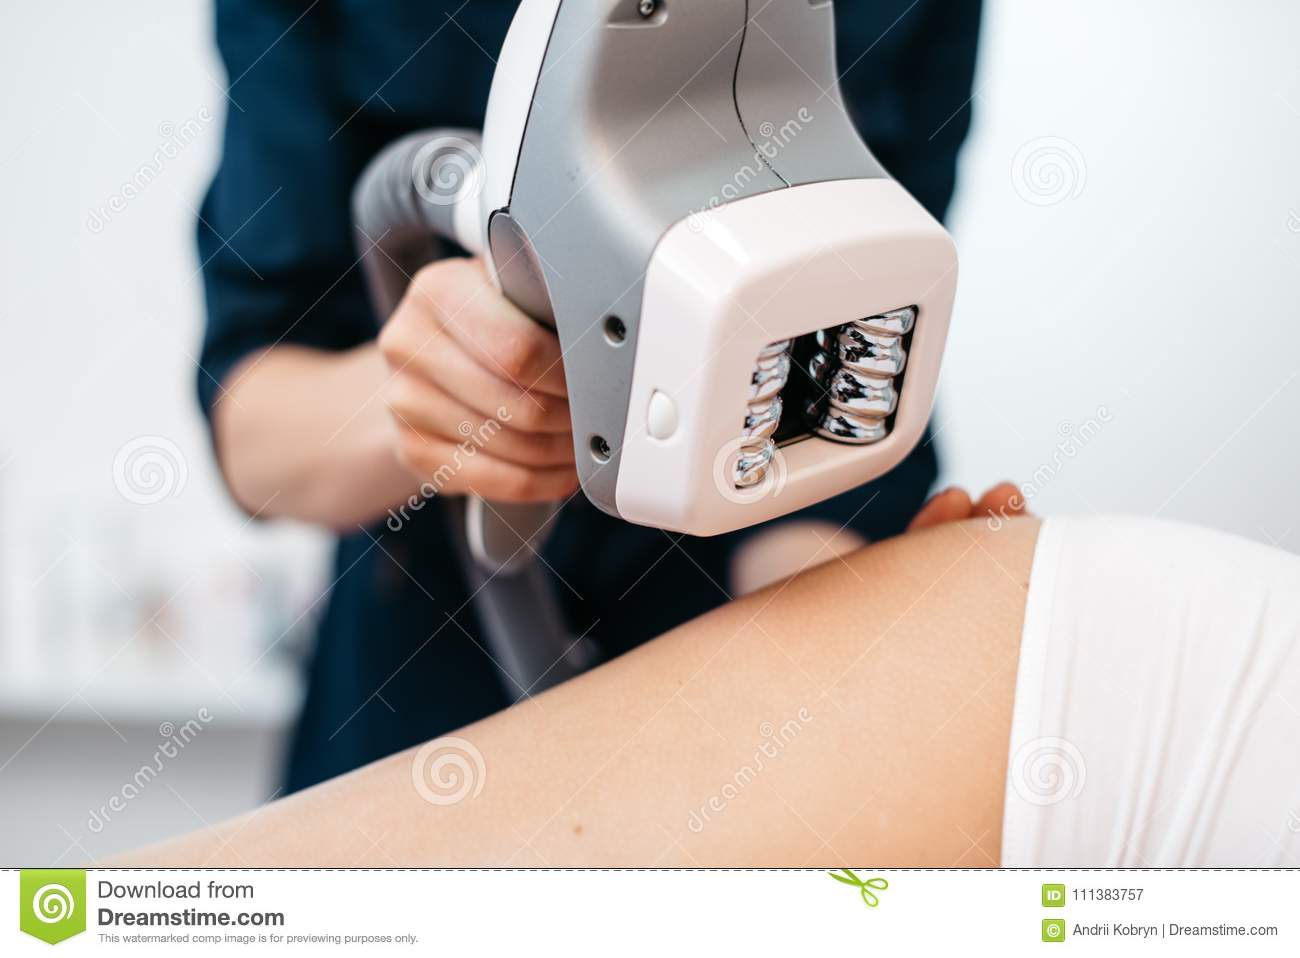 Ultrasound cavitation mashine in the hands of beautician. Close-up view. Woman is receiving the anti-cellulite treatment